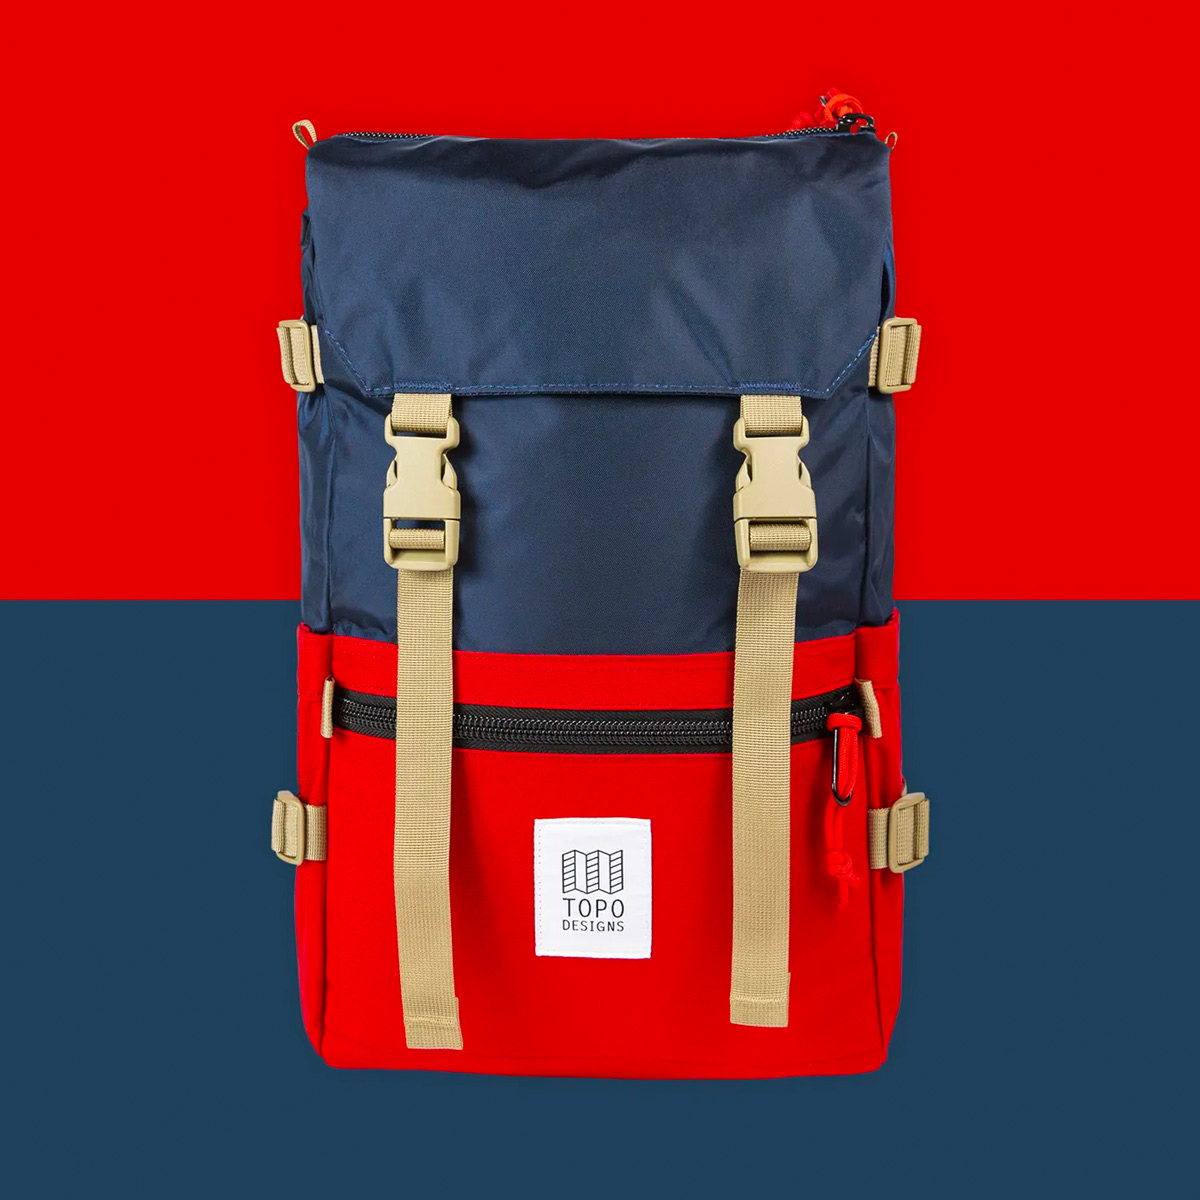 Topo Designs Rover Pack Classic Navy/Red, durable, lightweight and water-resistant pack for daily use